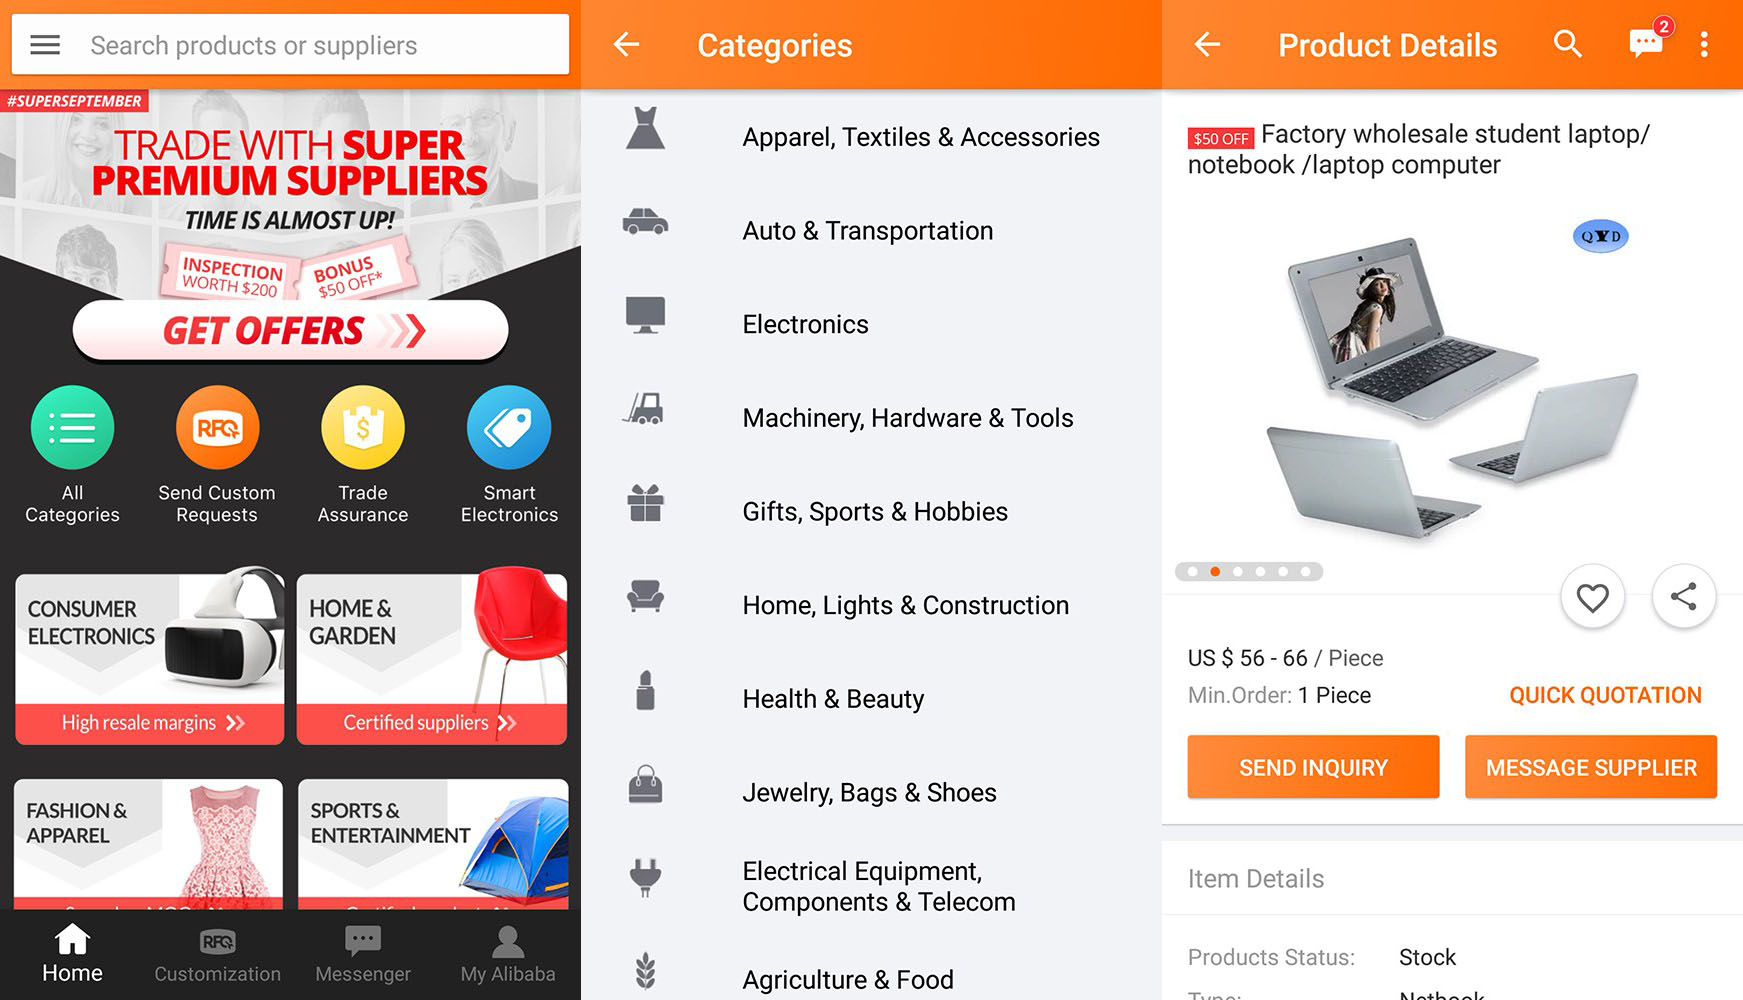 Download Alibaba Com Leading Online B2b Trade Marketplace 6 15 1 For Android Free The alibaba.com app is a shopping wholesale mobile marketplace for global trade. download alibaba com leading online